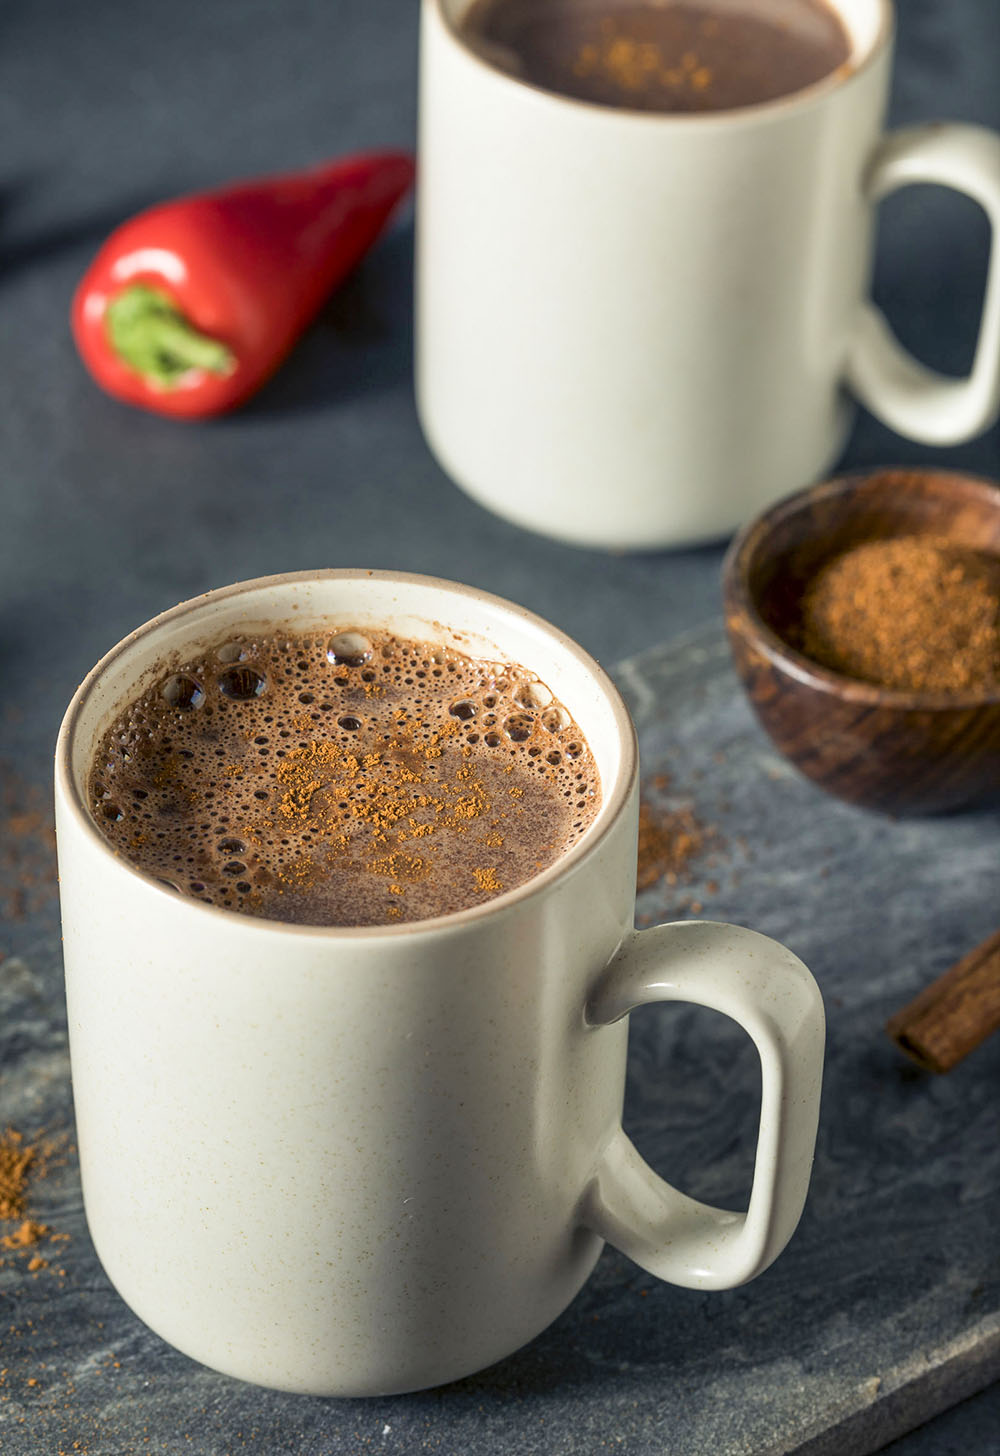 Mexican Coffee with simple ingredients of cinnamon, coffee, and sugar. Add chili powder for more kick!